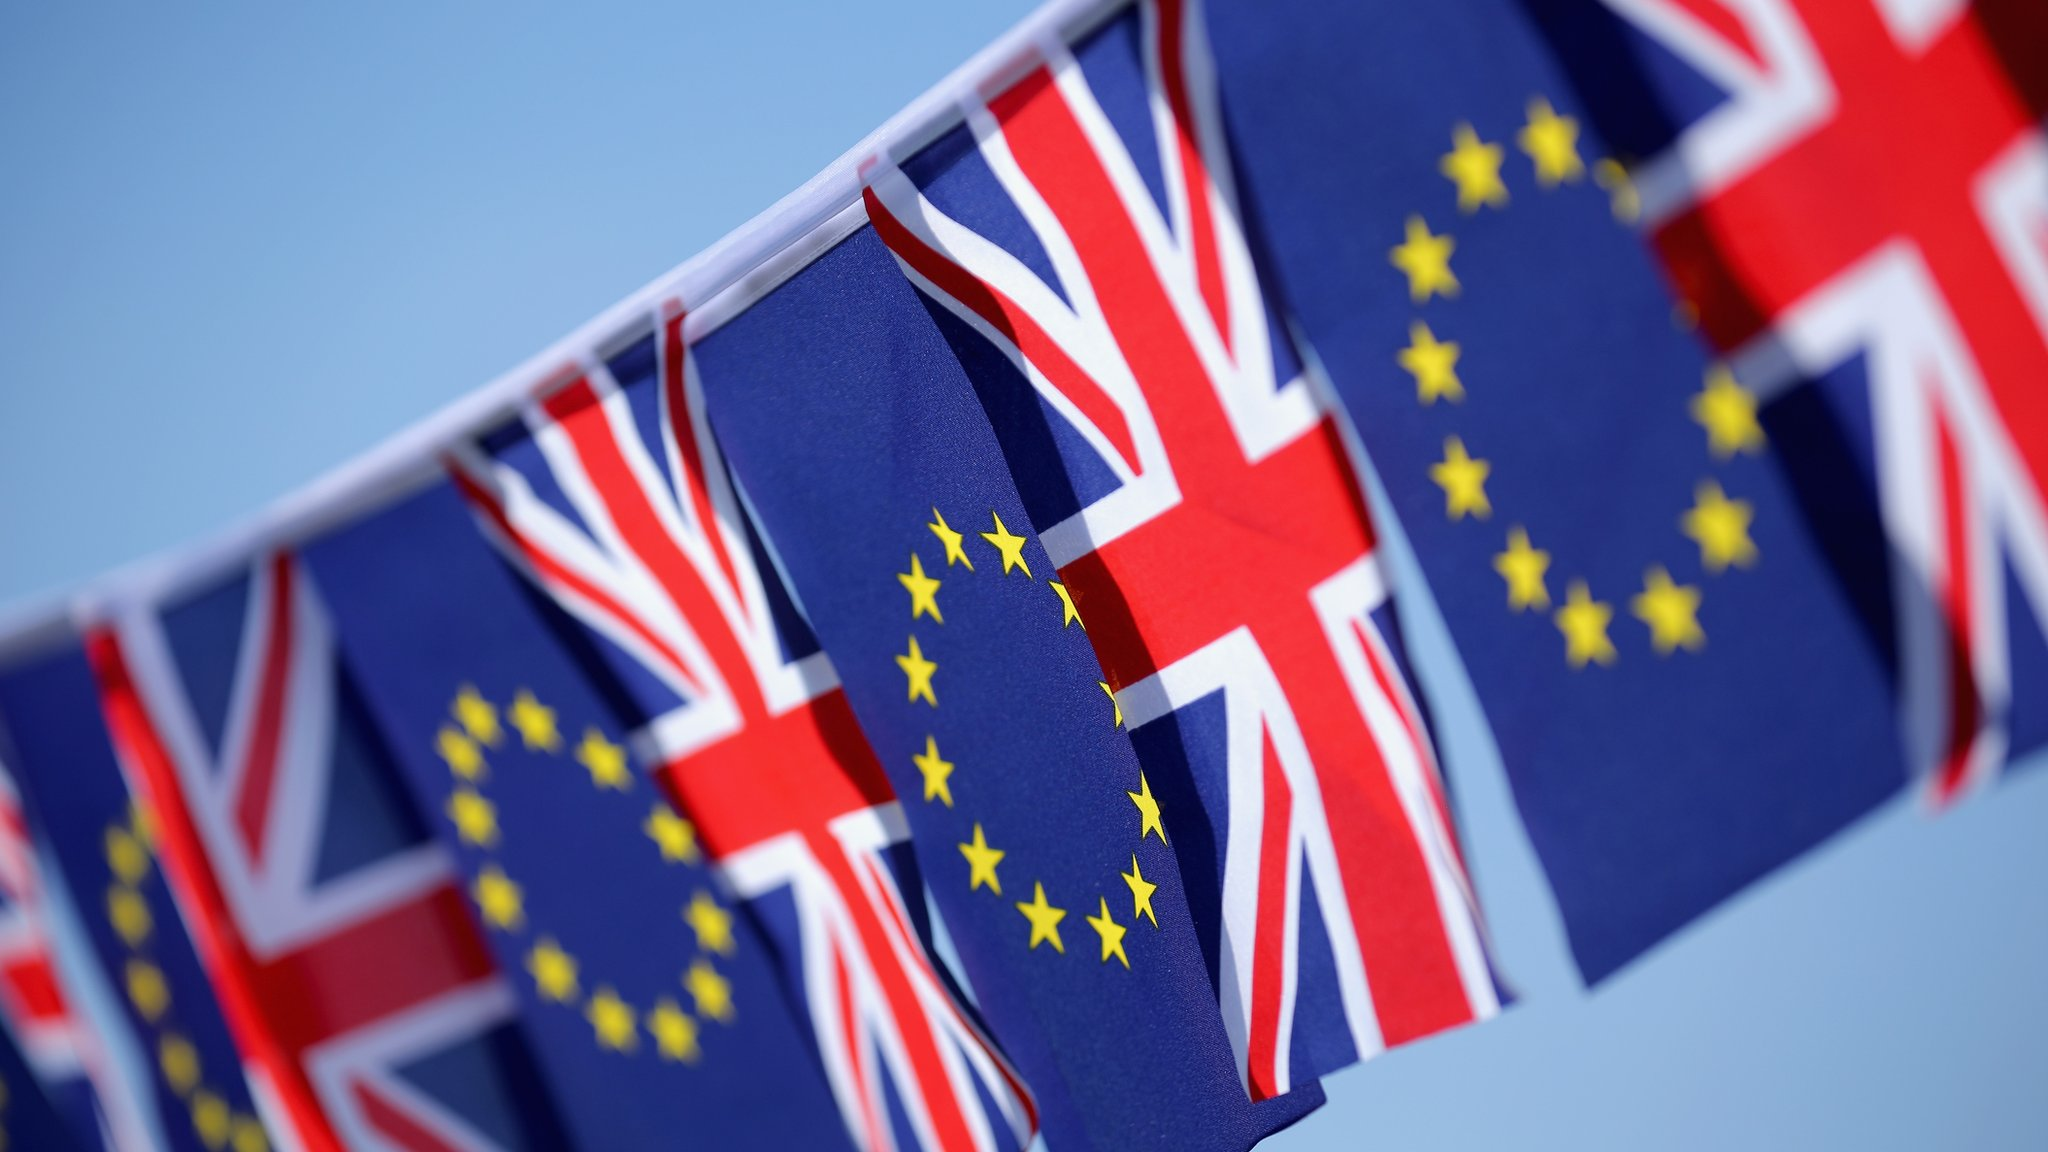 Brexit: All you need to know about the UK leaving the EU